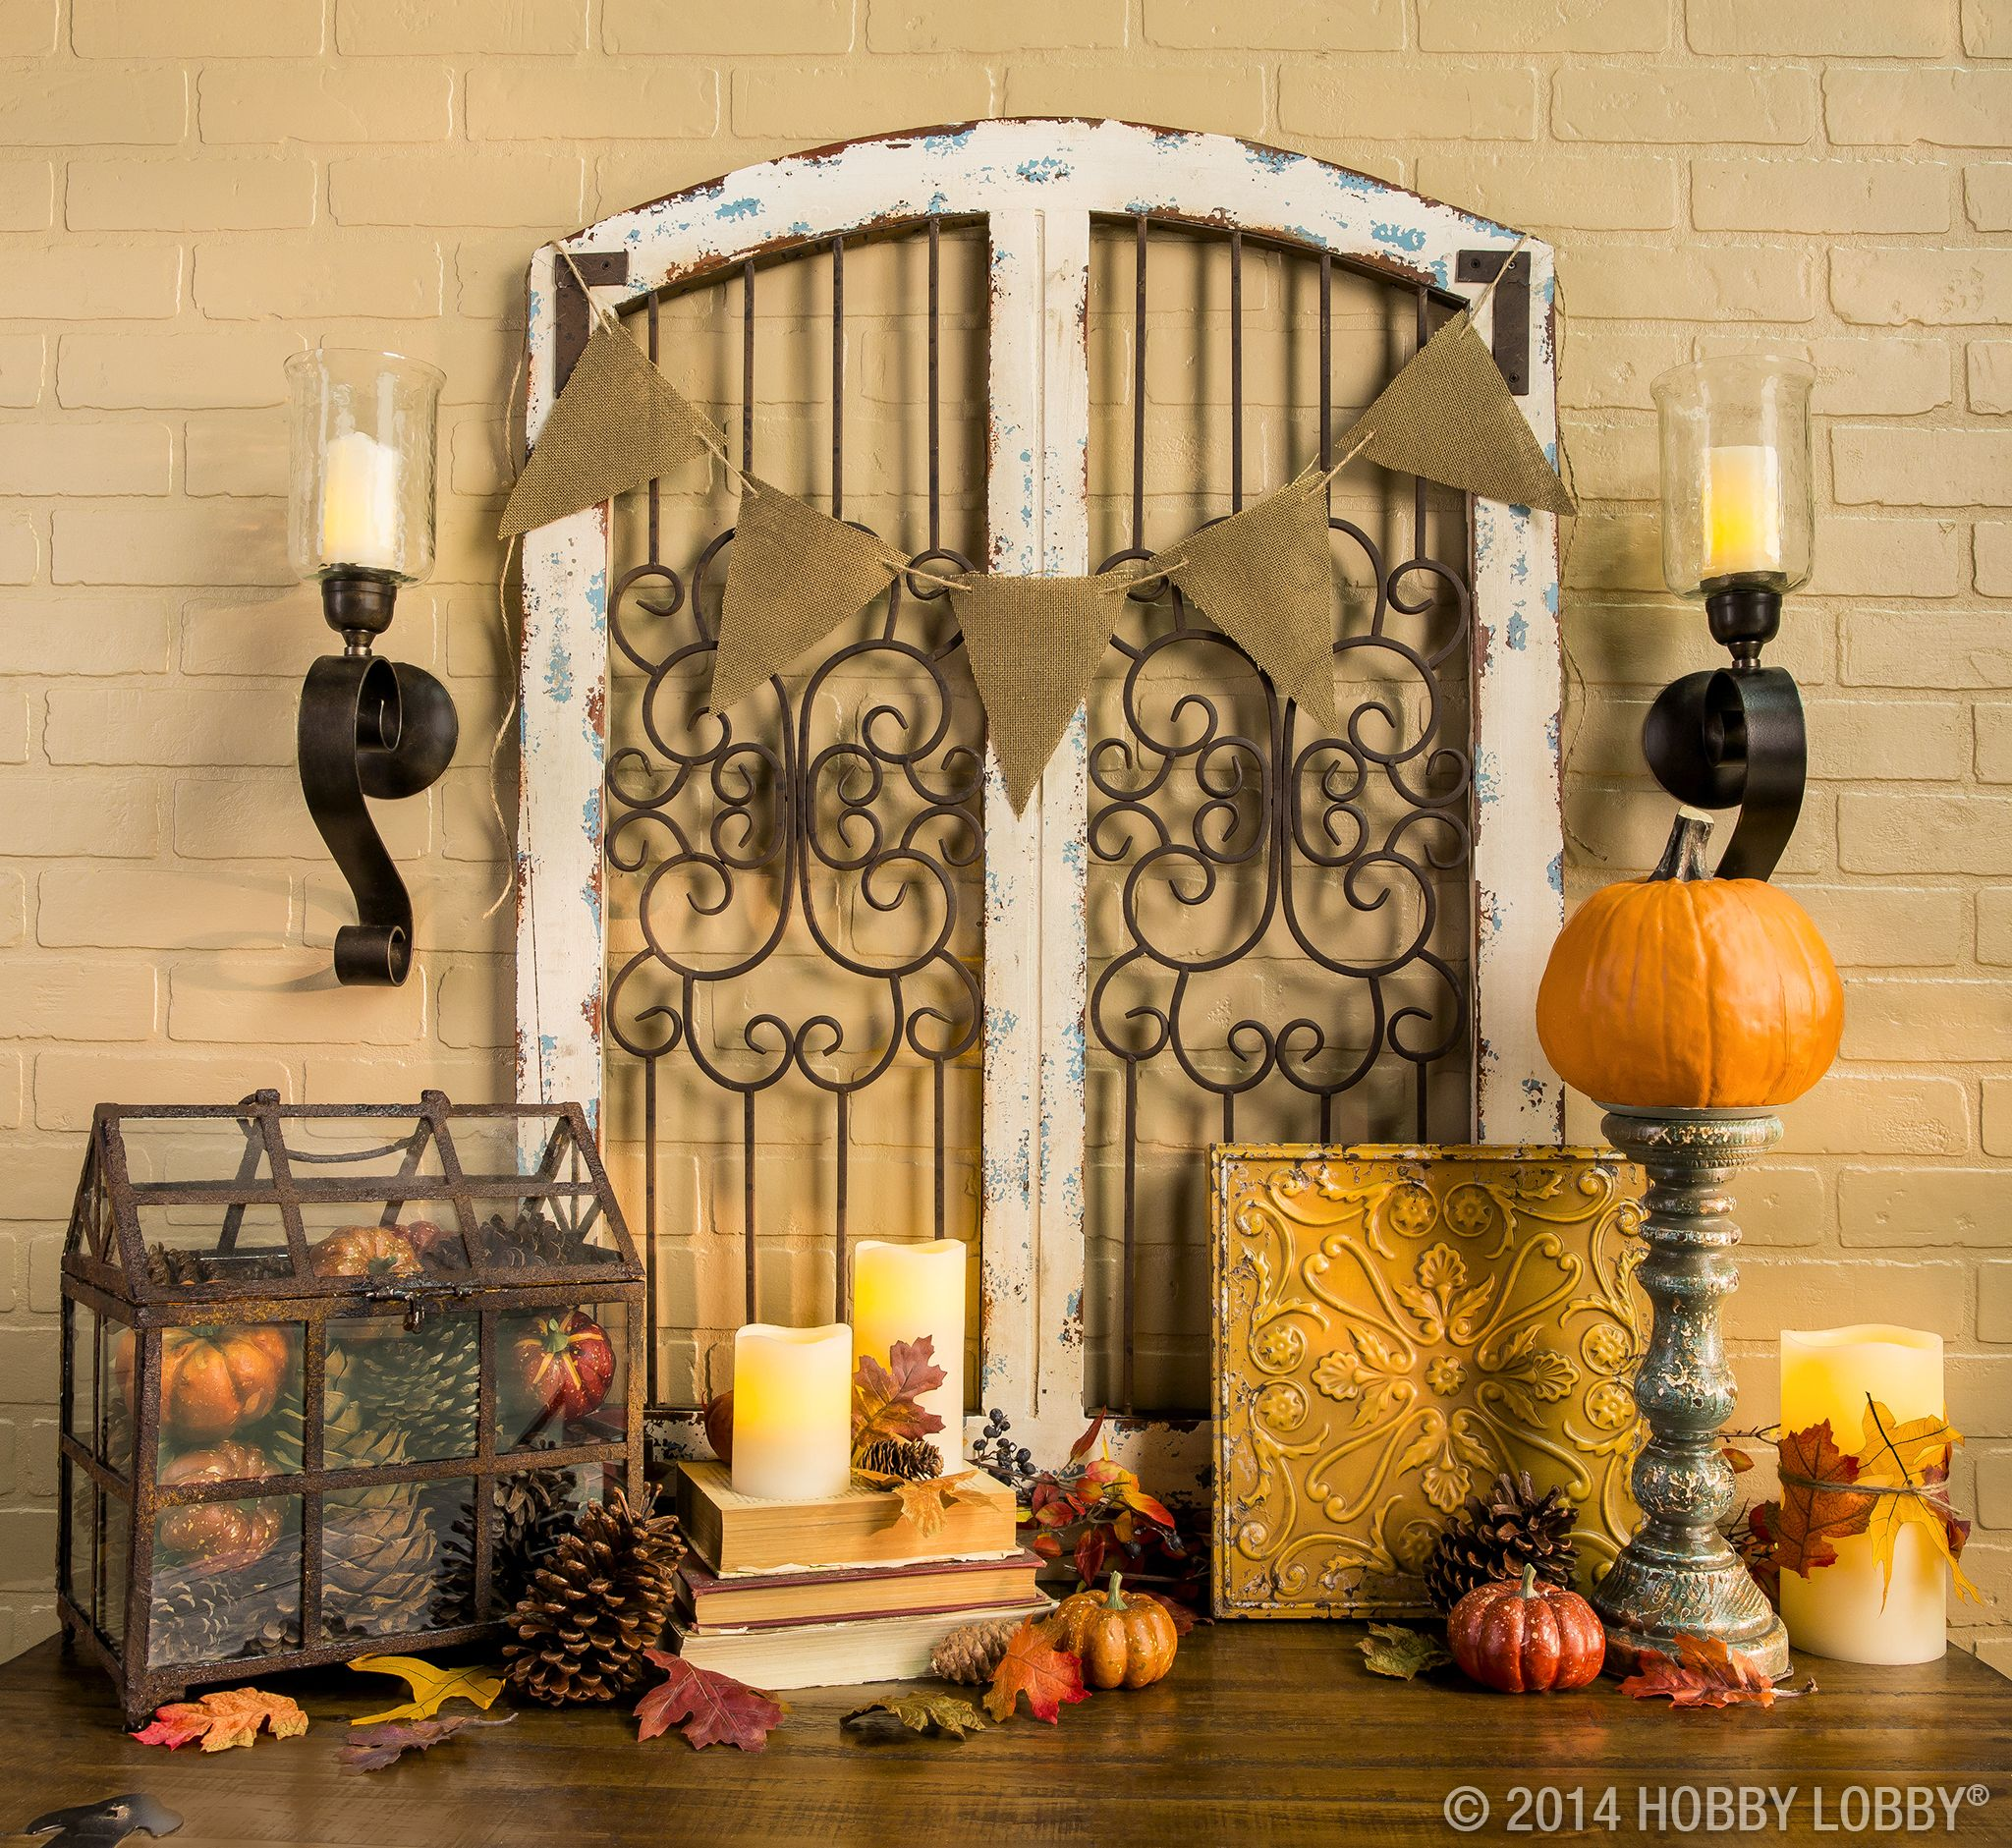 Pair metal wall art and sconces for an elegant focal point within - Elegant Halloween Decor